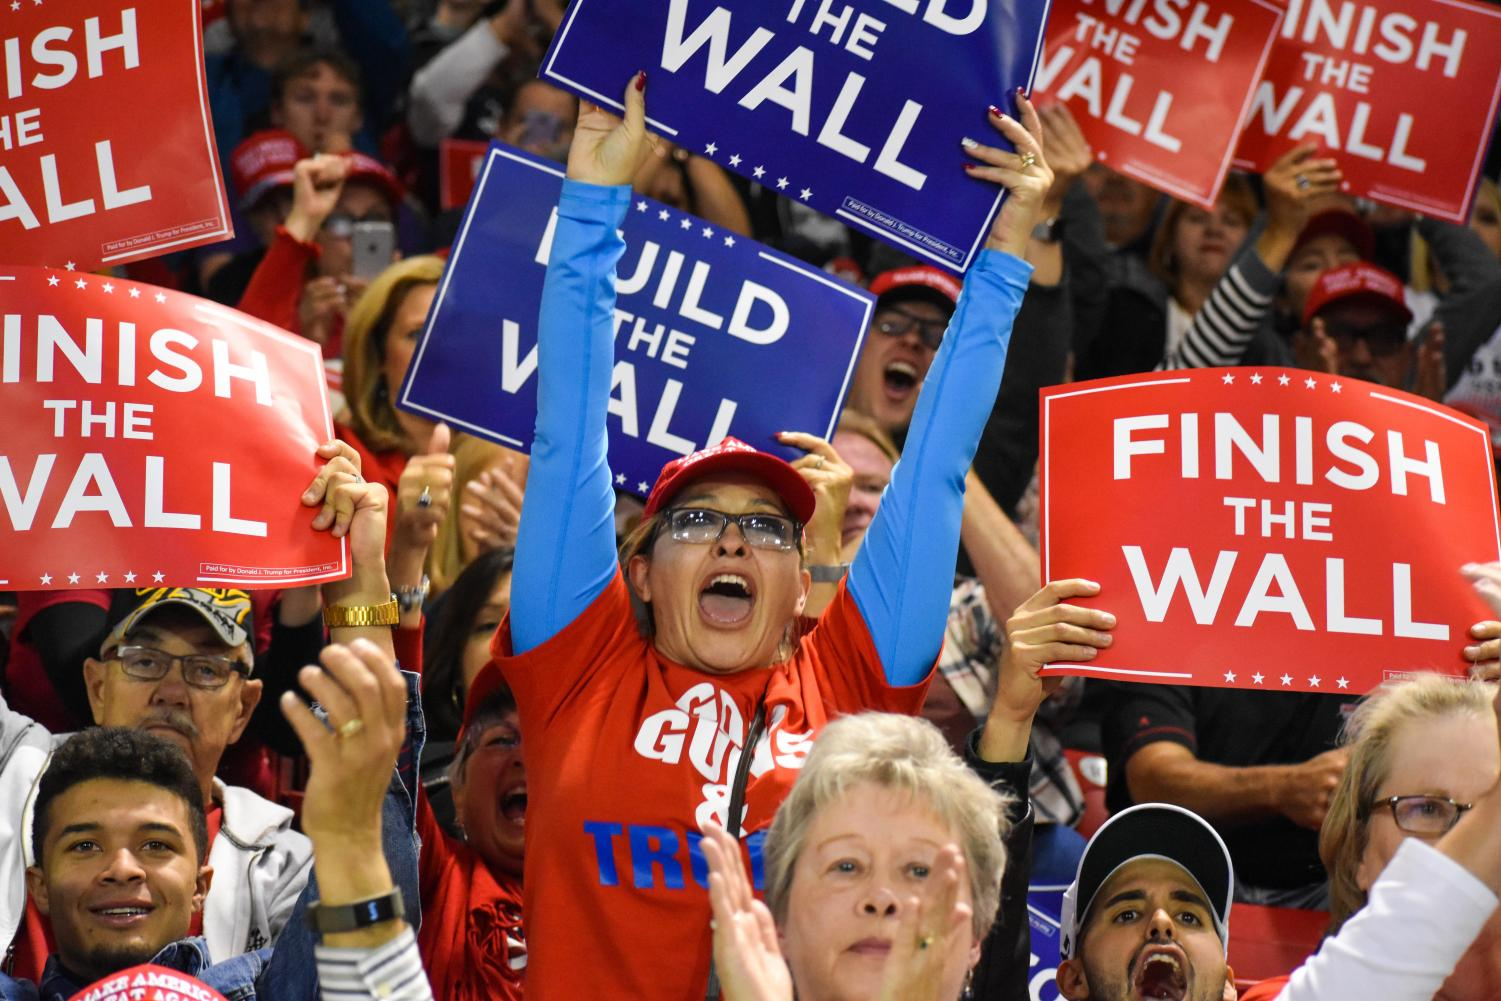 Attendees of the Trump rally in El Paso, TX. hold signage in favor of a border wall.